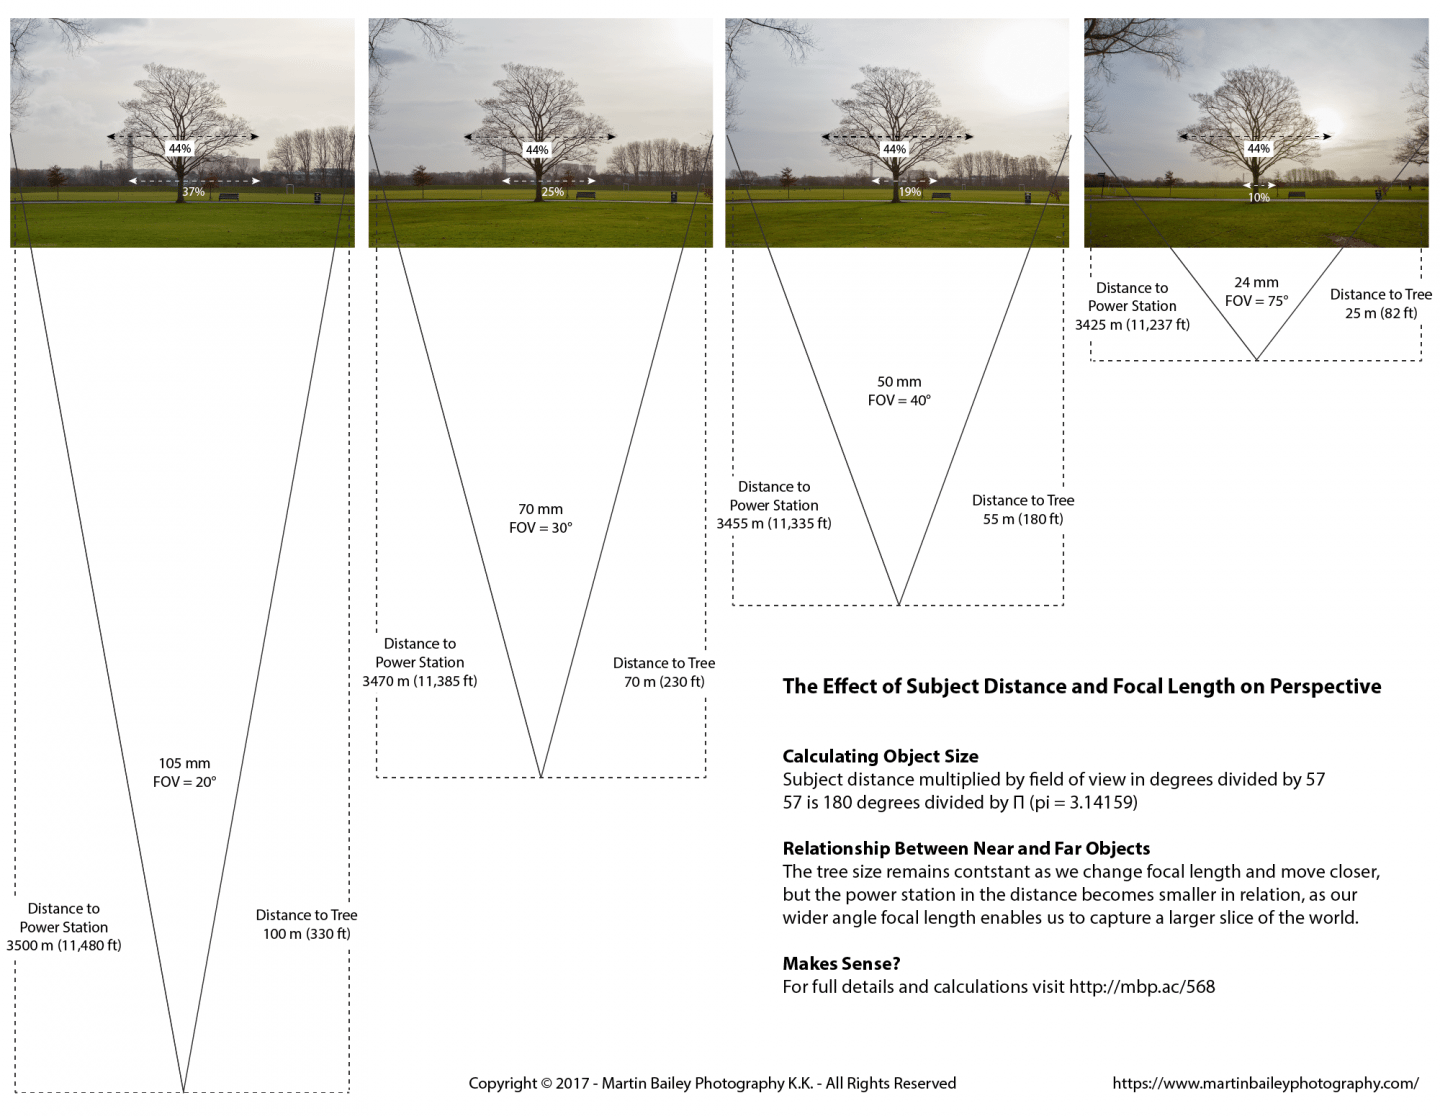 The Effect of Subject Distance and Focal Length on Perspective